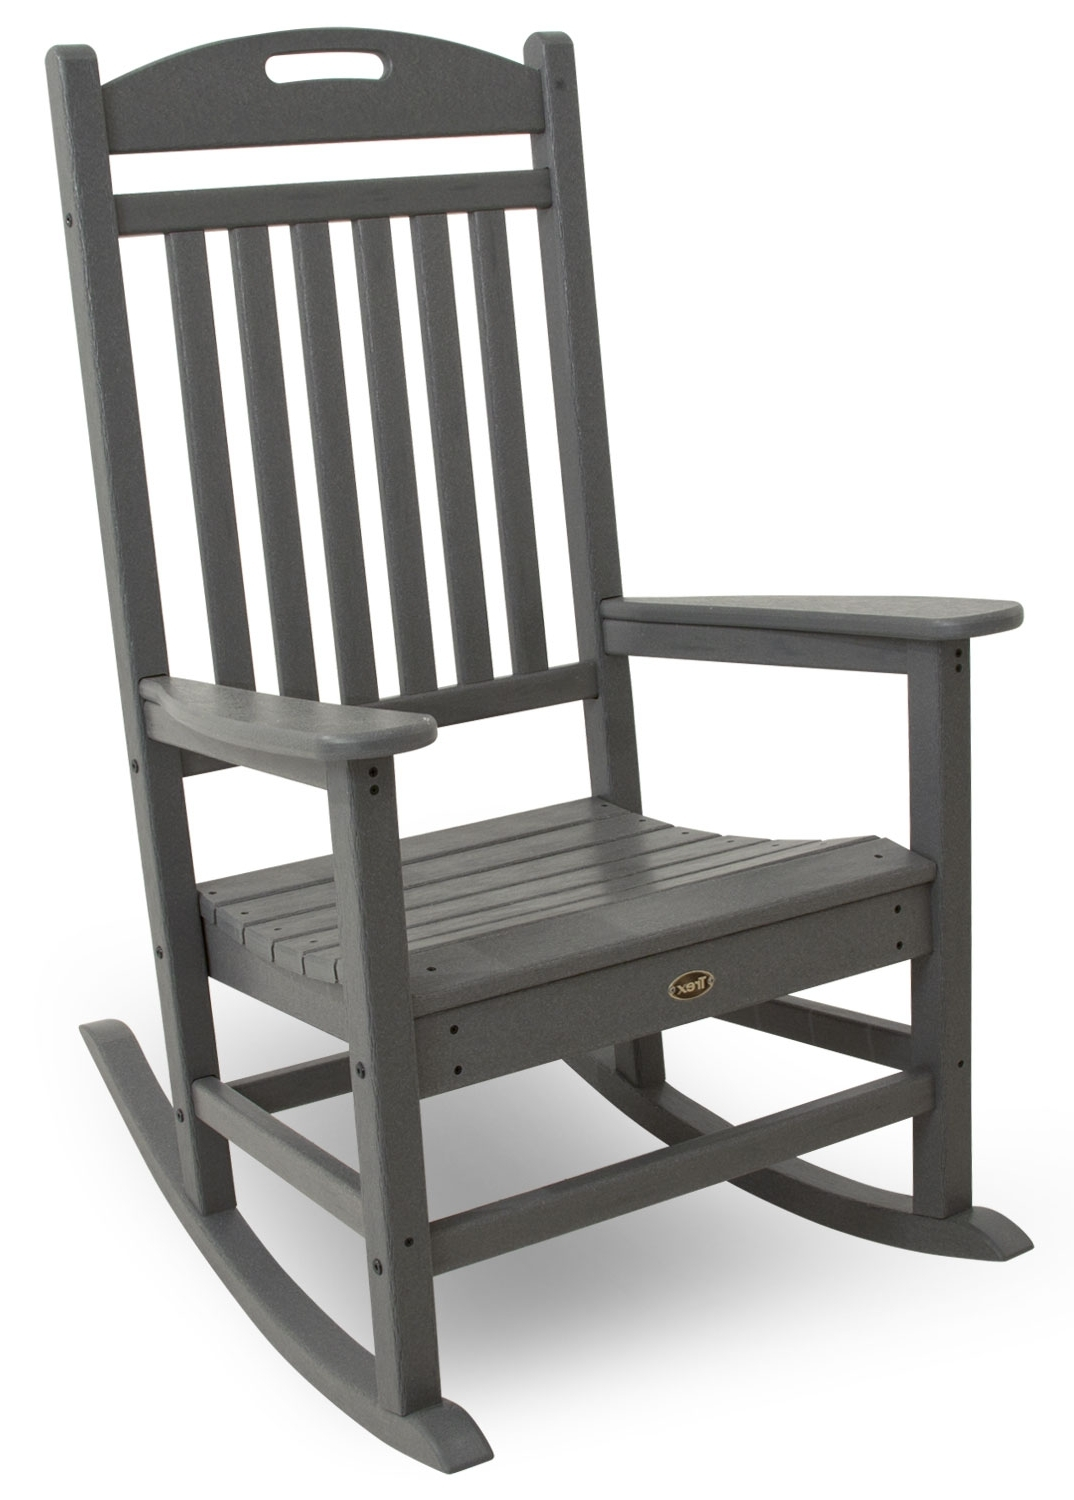 Livingroom : Shop Adams Mfg Corp Stackable Resin Rocking Chair At Pertaining To Current Stackable Patio Rocking Chairs (View 16 of 20)